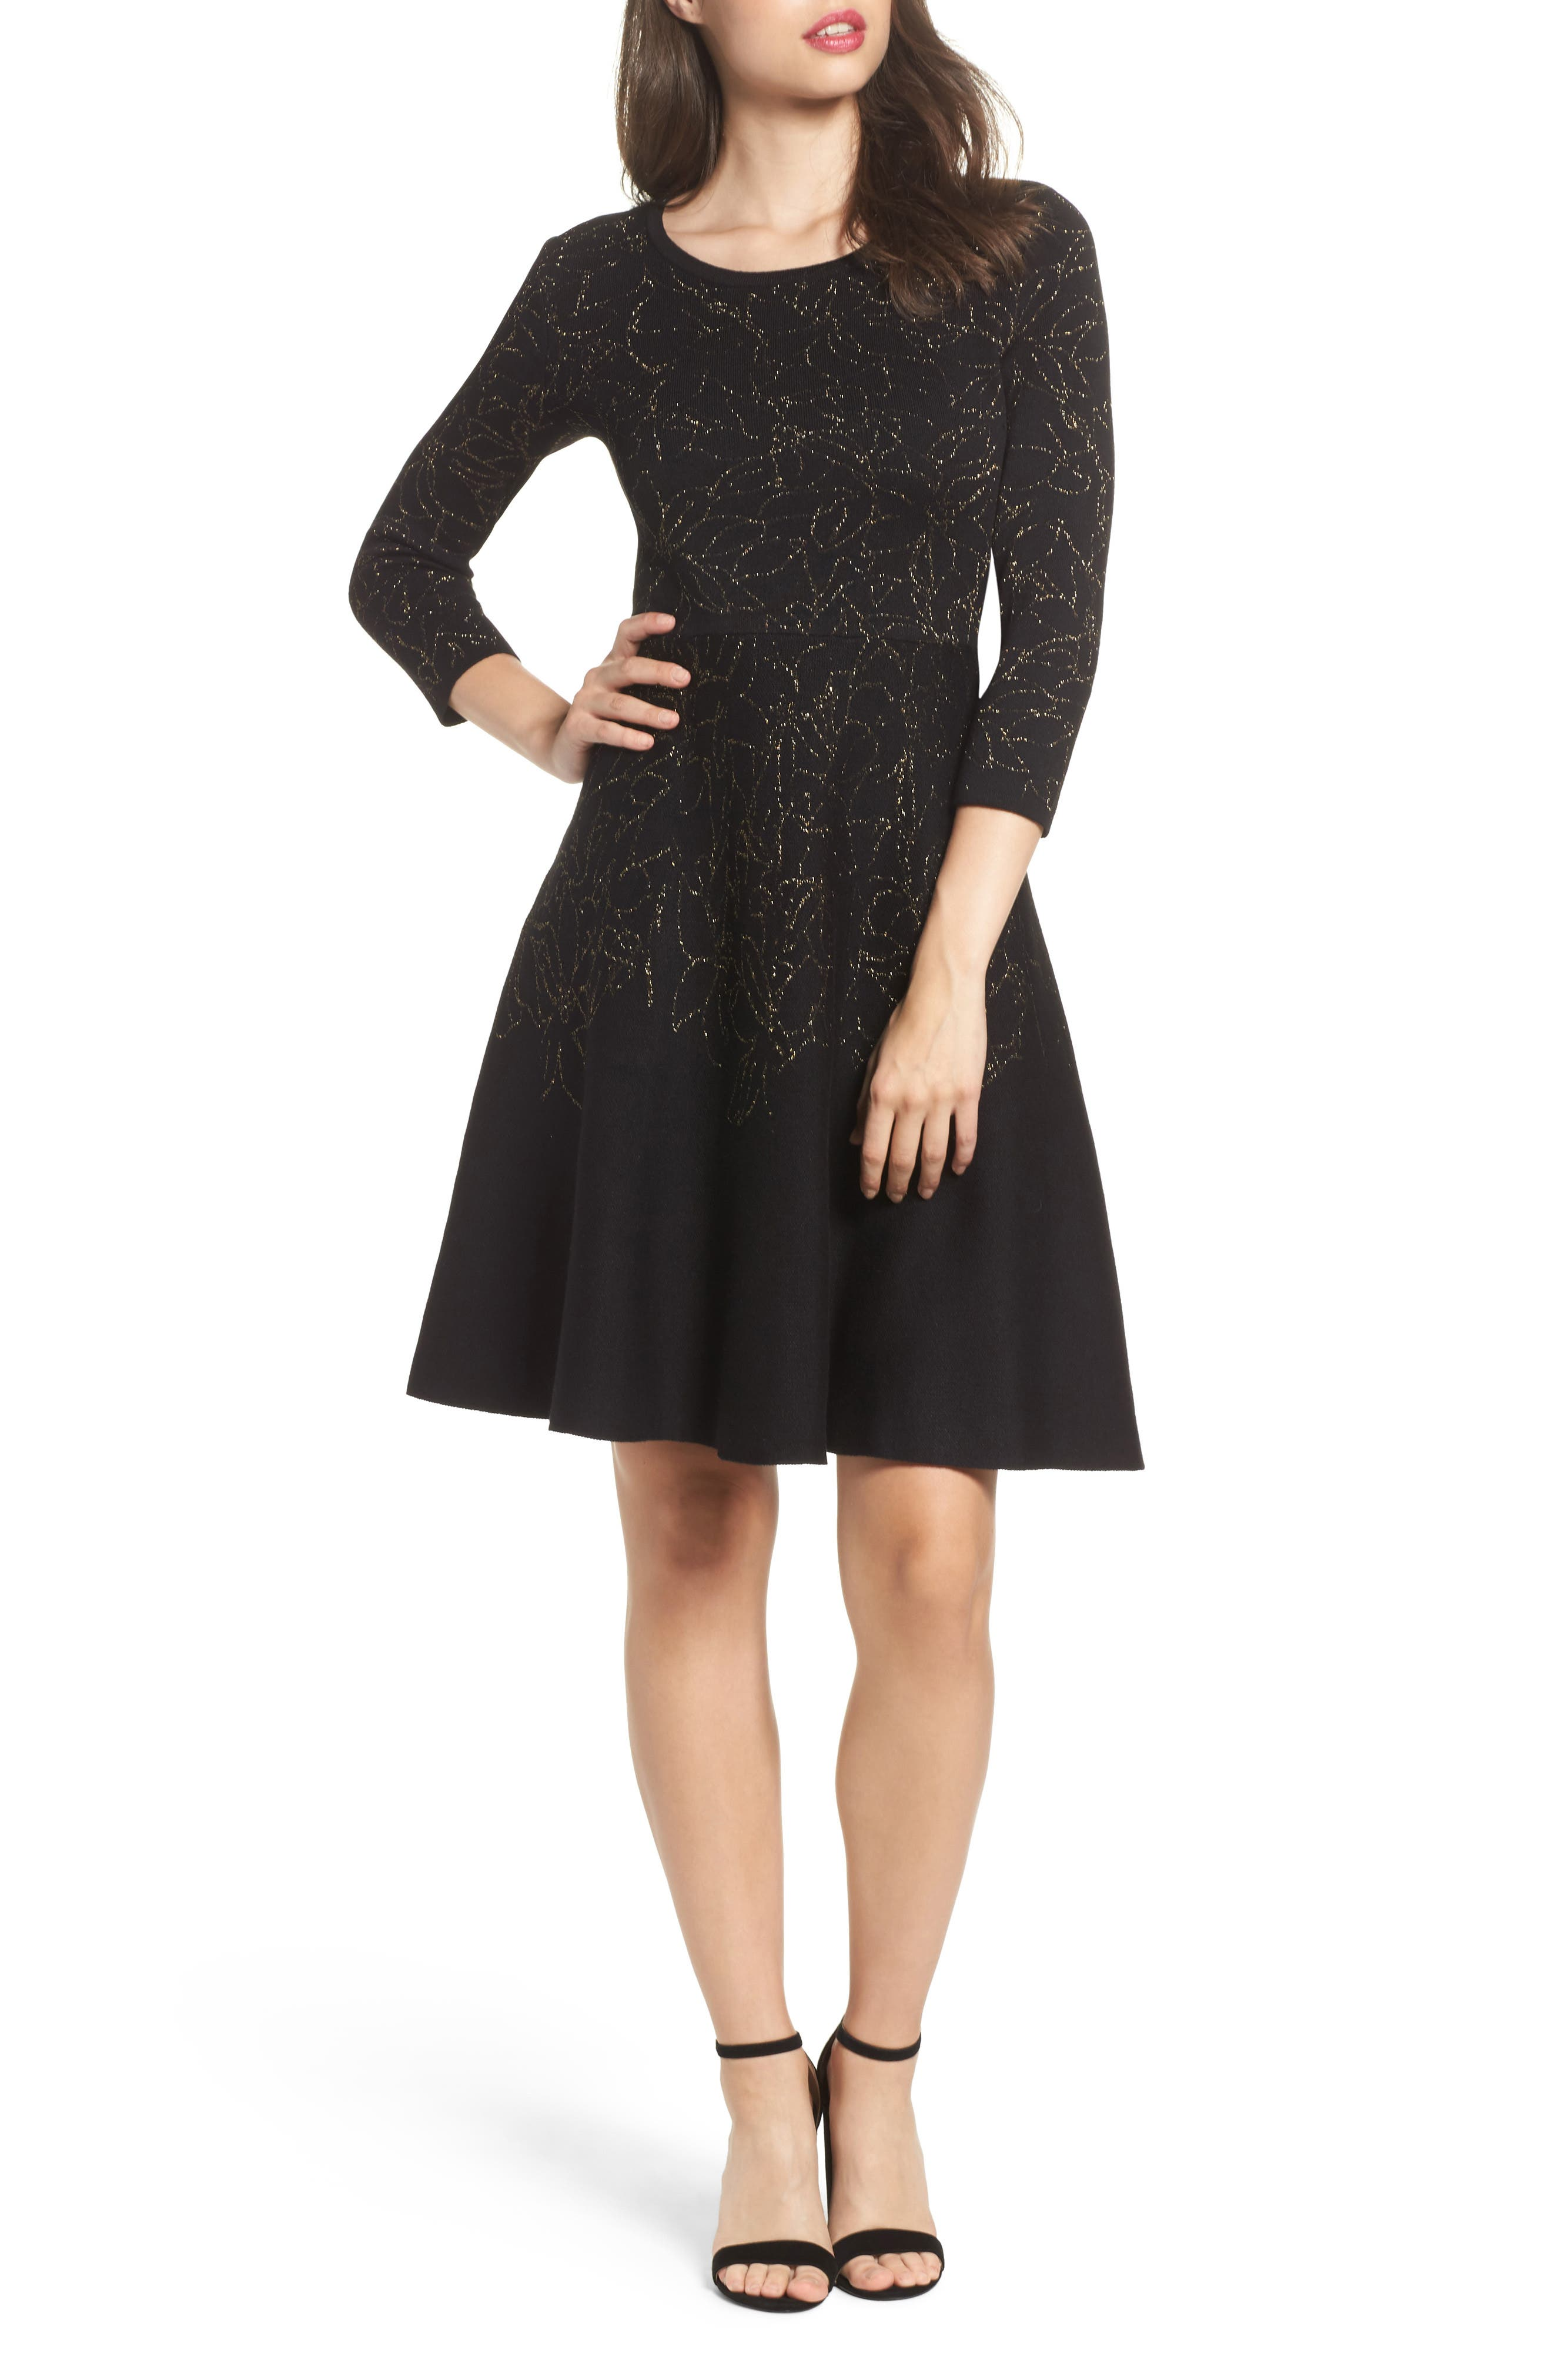 Taylor Dresses Metallic Knit Fit & Flare Dress